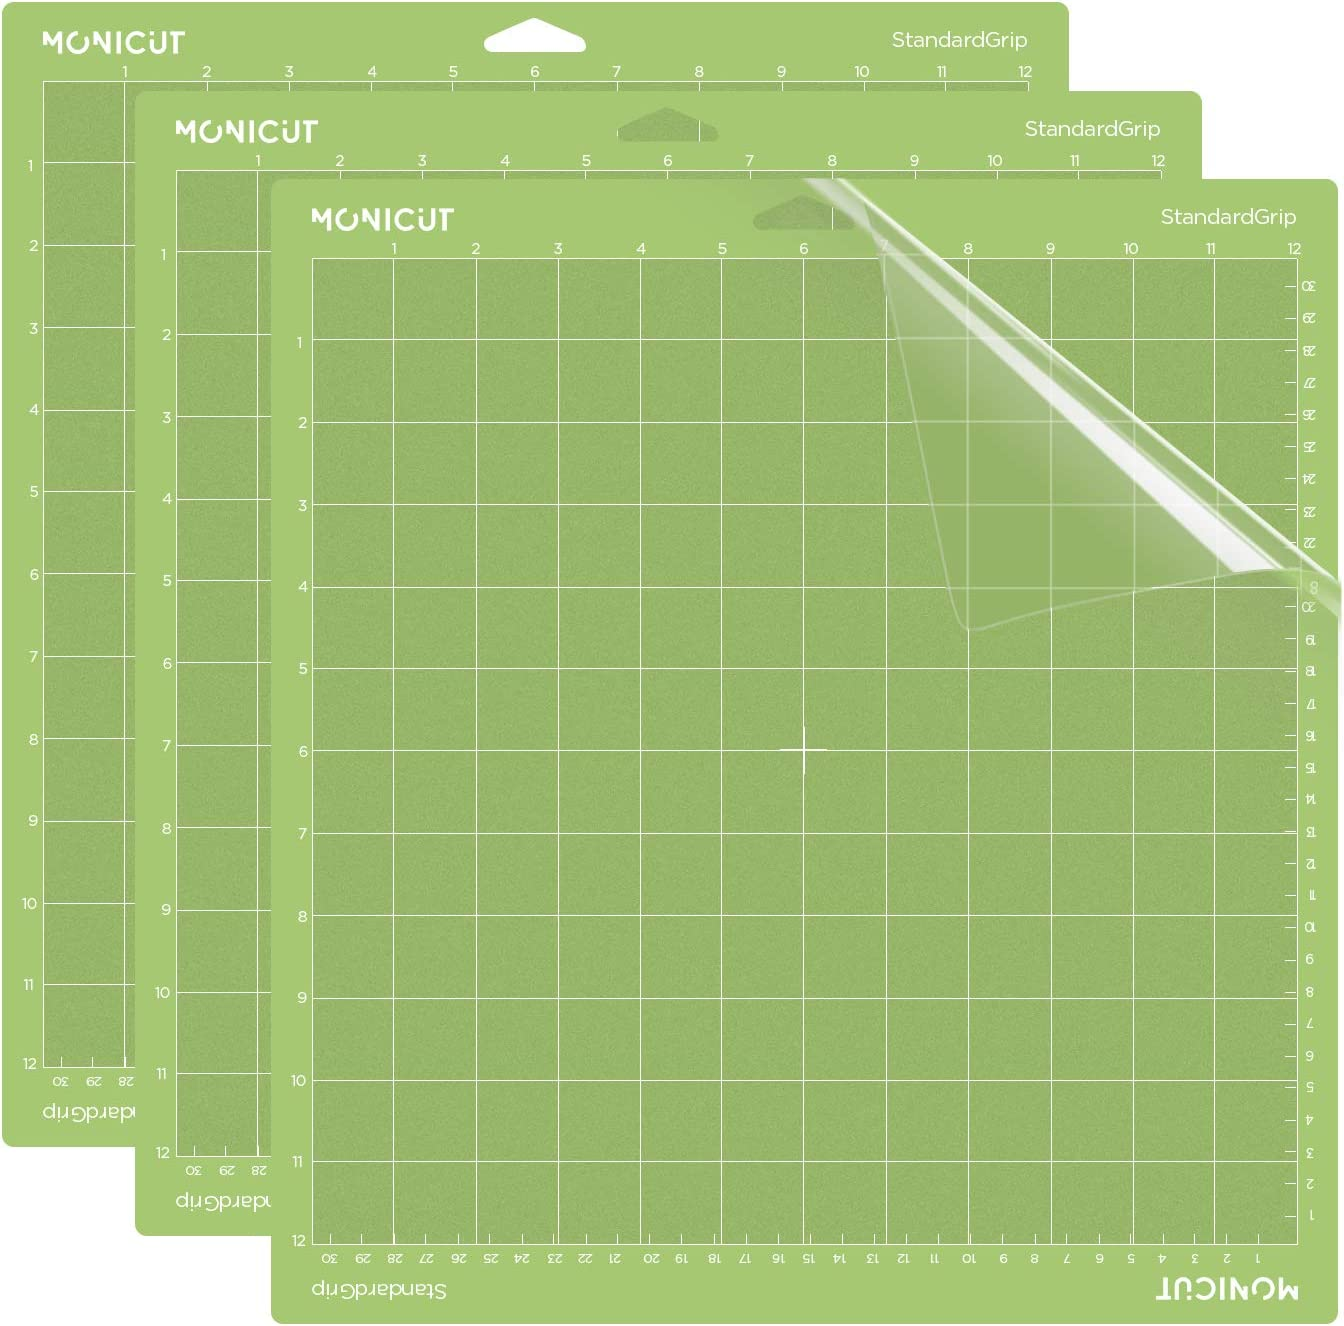 3 Mats,12x24 inch Perfect for Crafts Arts Blue Light Adhesive Cut Mats Replacement Accessories for Cricut Quilting REALIKE LightGrip Cutting Mat for Cricut Explore One//Air//Air 2//Maker